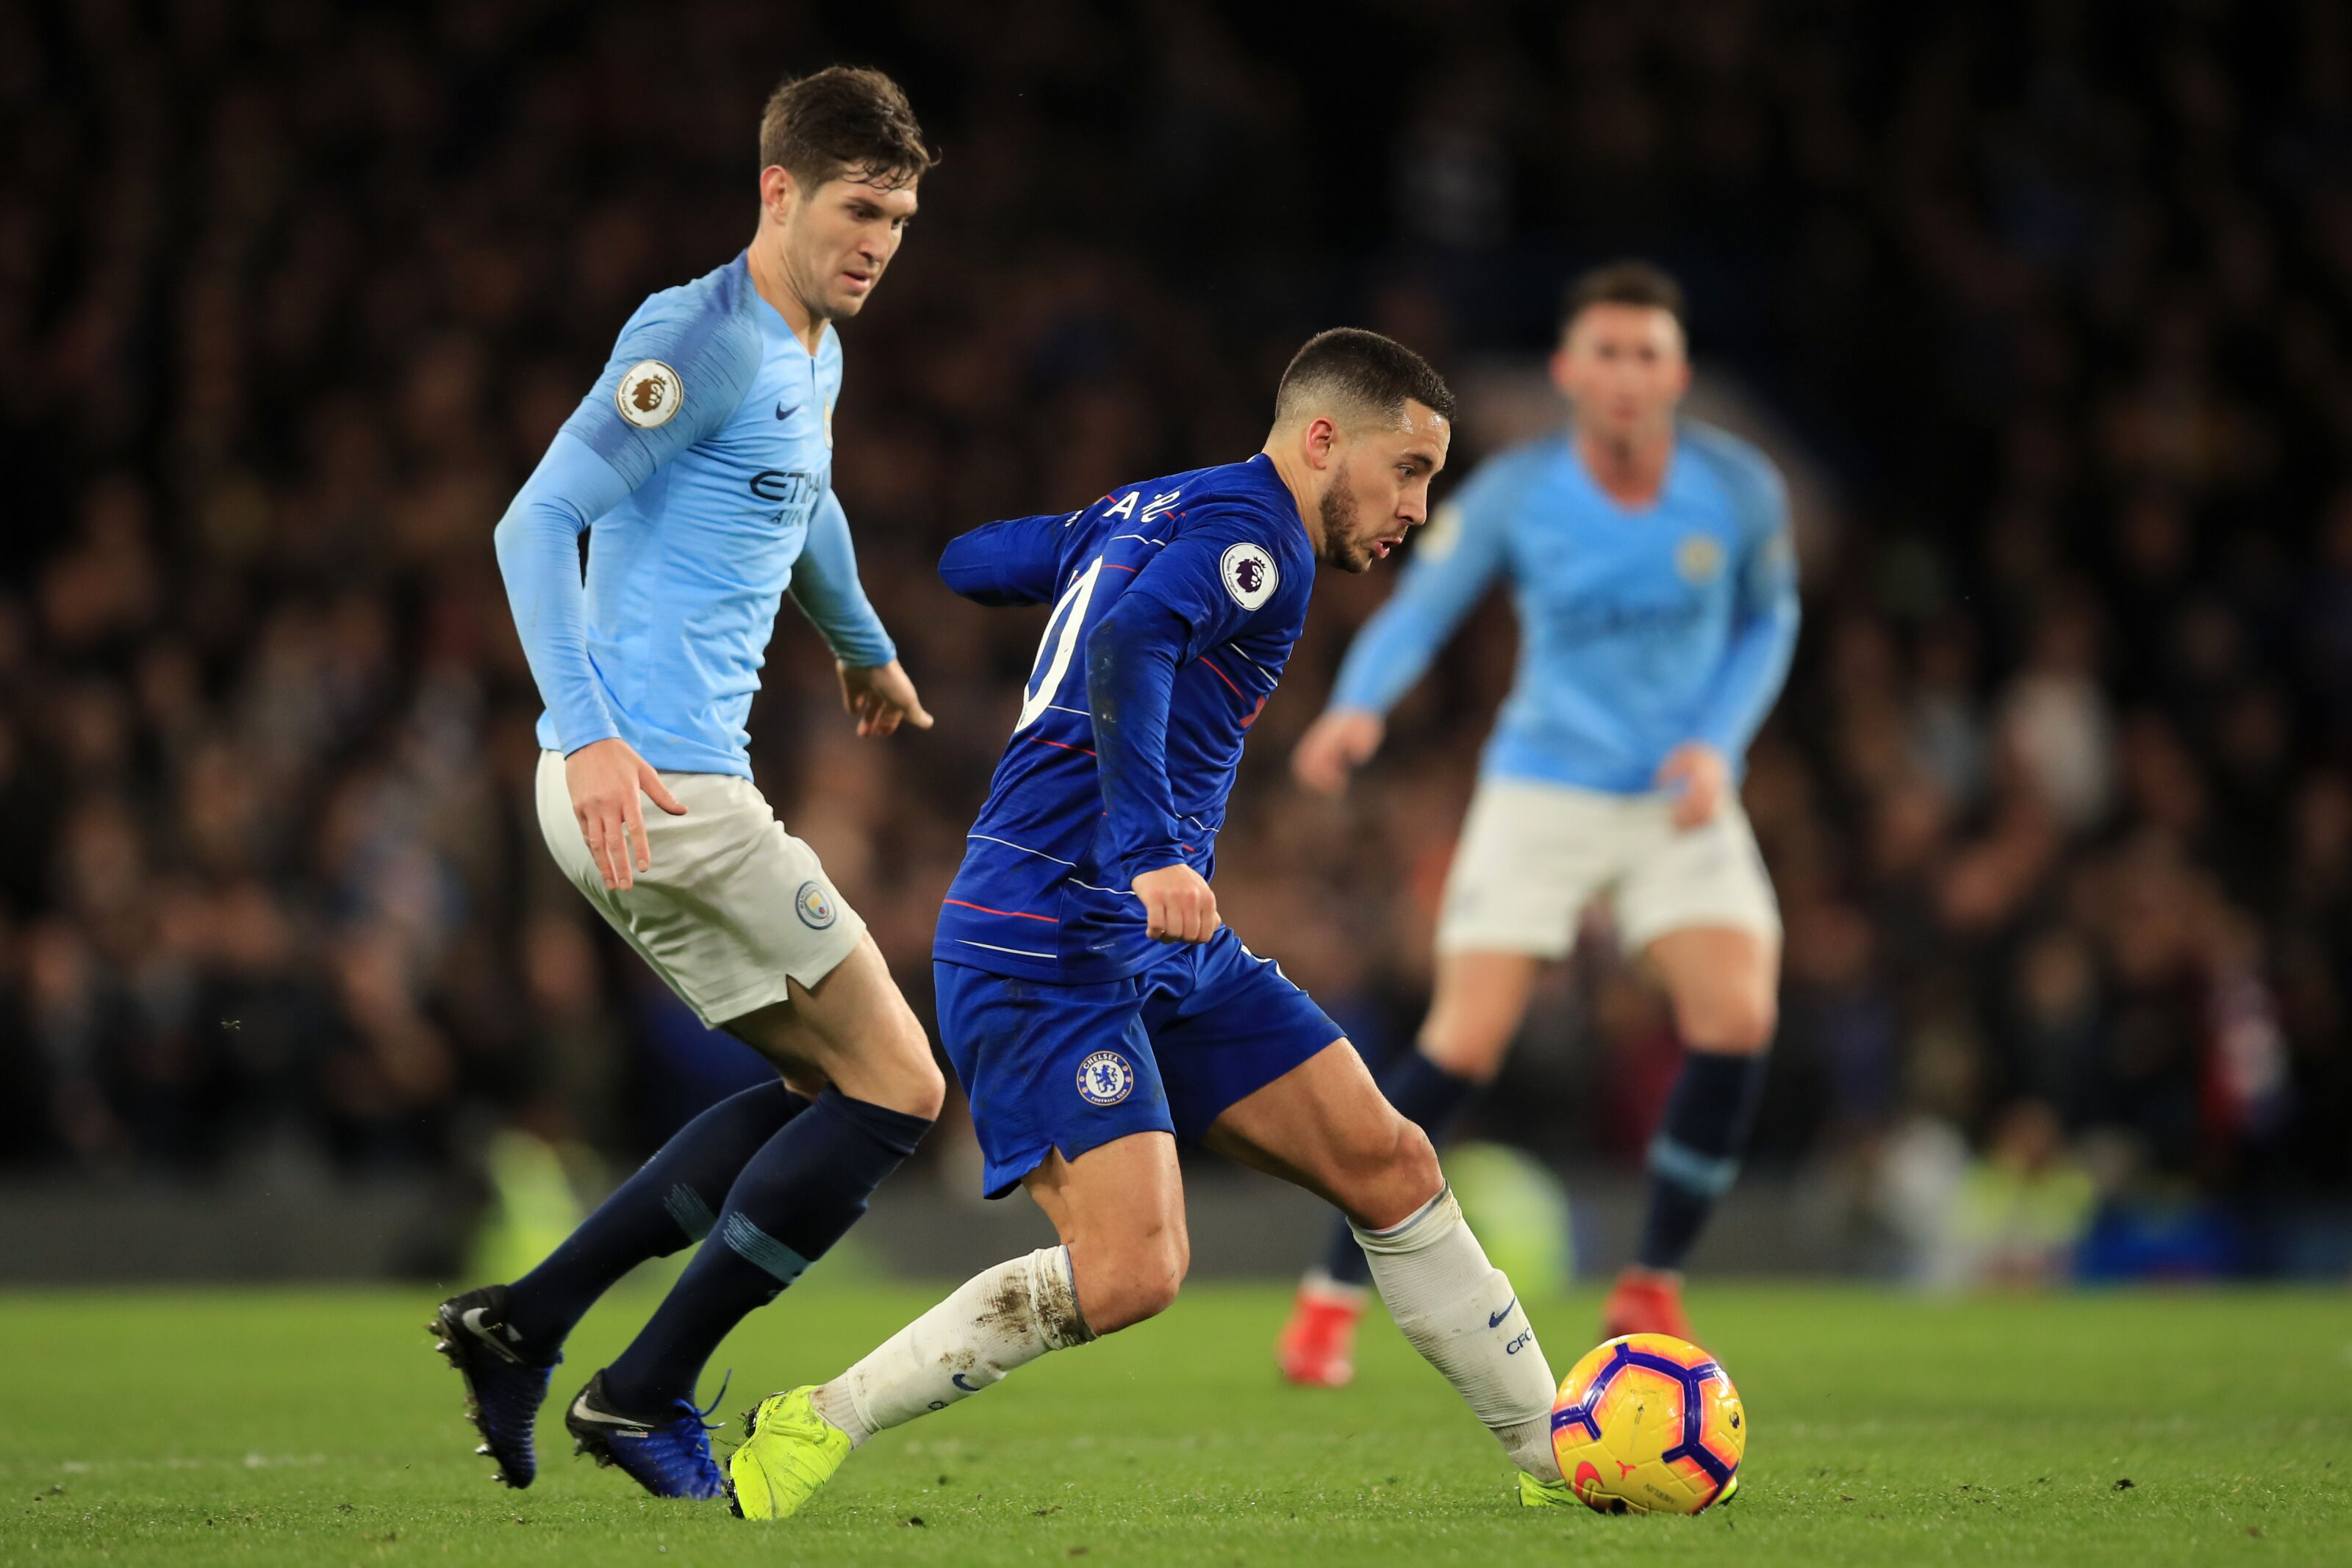 LONDON, ENGLAND - DECEMBER 08: Eden Hazard of Chelsea in action with John Stones of Manchester City during the Premier League match between Chelsea FC and Manchester City at Stamford Bridge on December 8, 2018 in London, United Kingdom. (Photo by Marc Atkins/Offside/Getty Images)